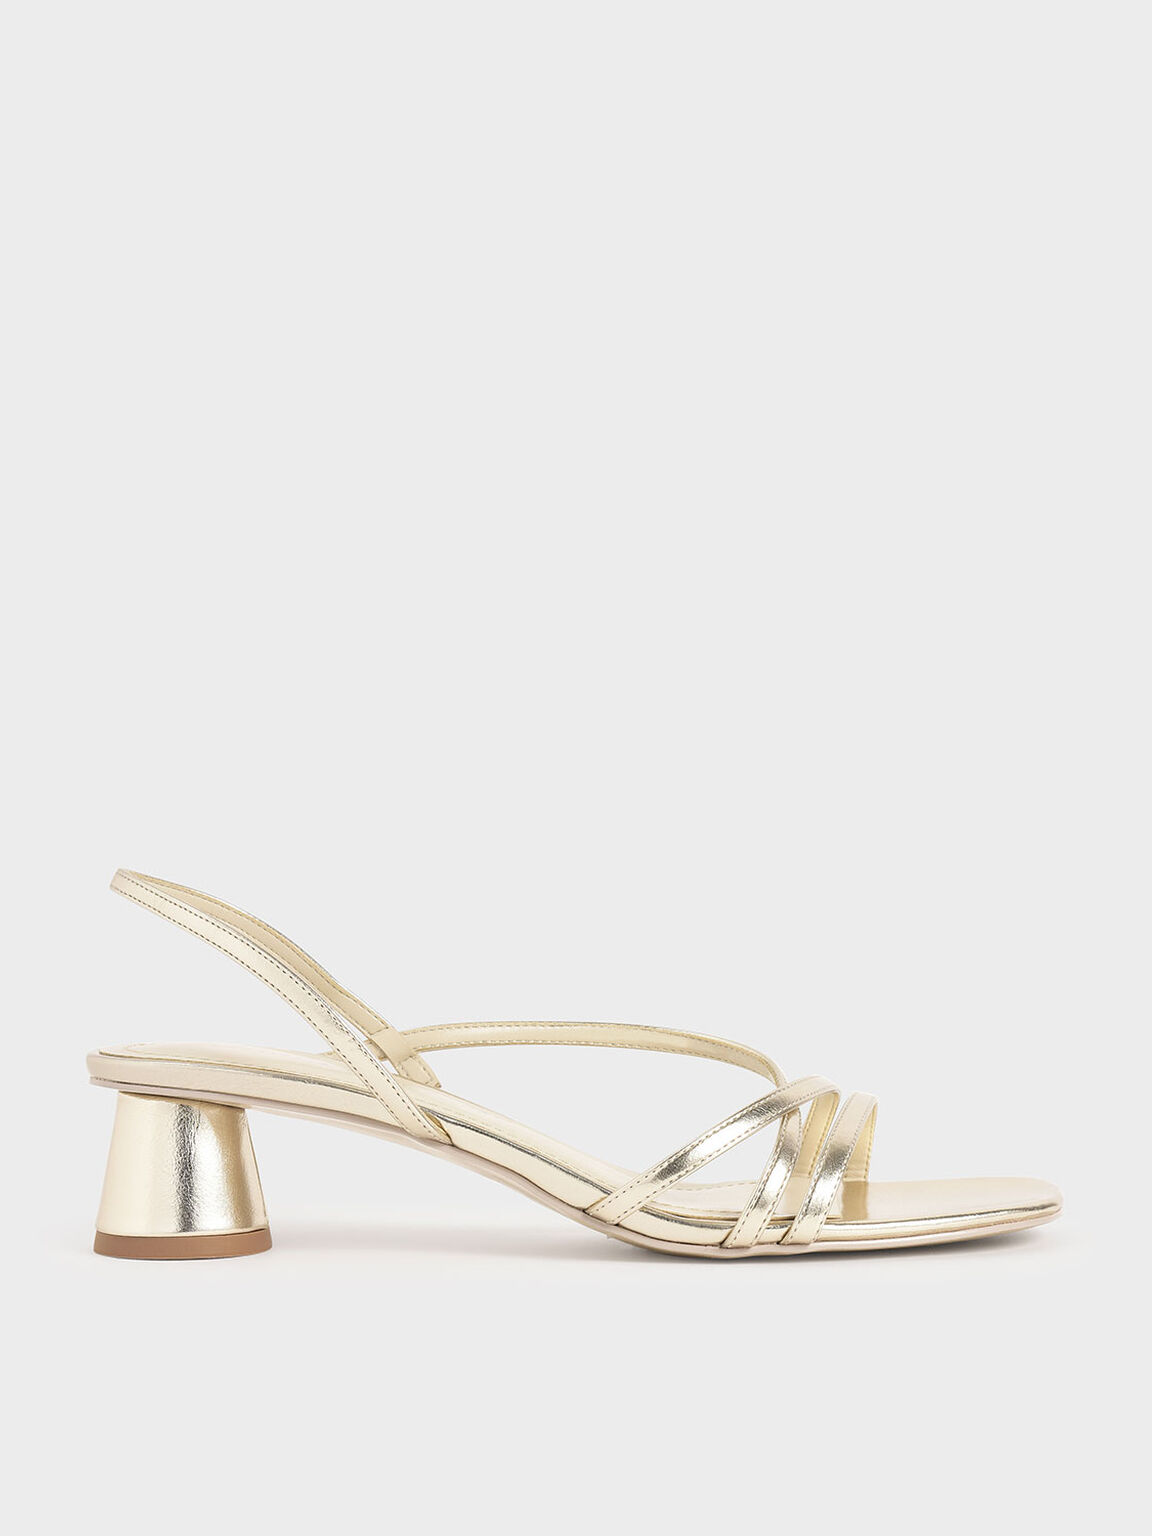 Metallic Strappy Cylindrical Heel Sandals, Gold, hi-res